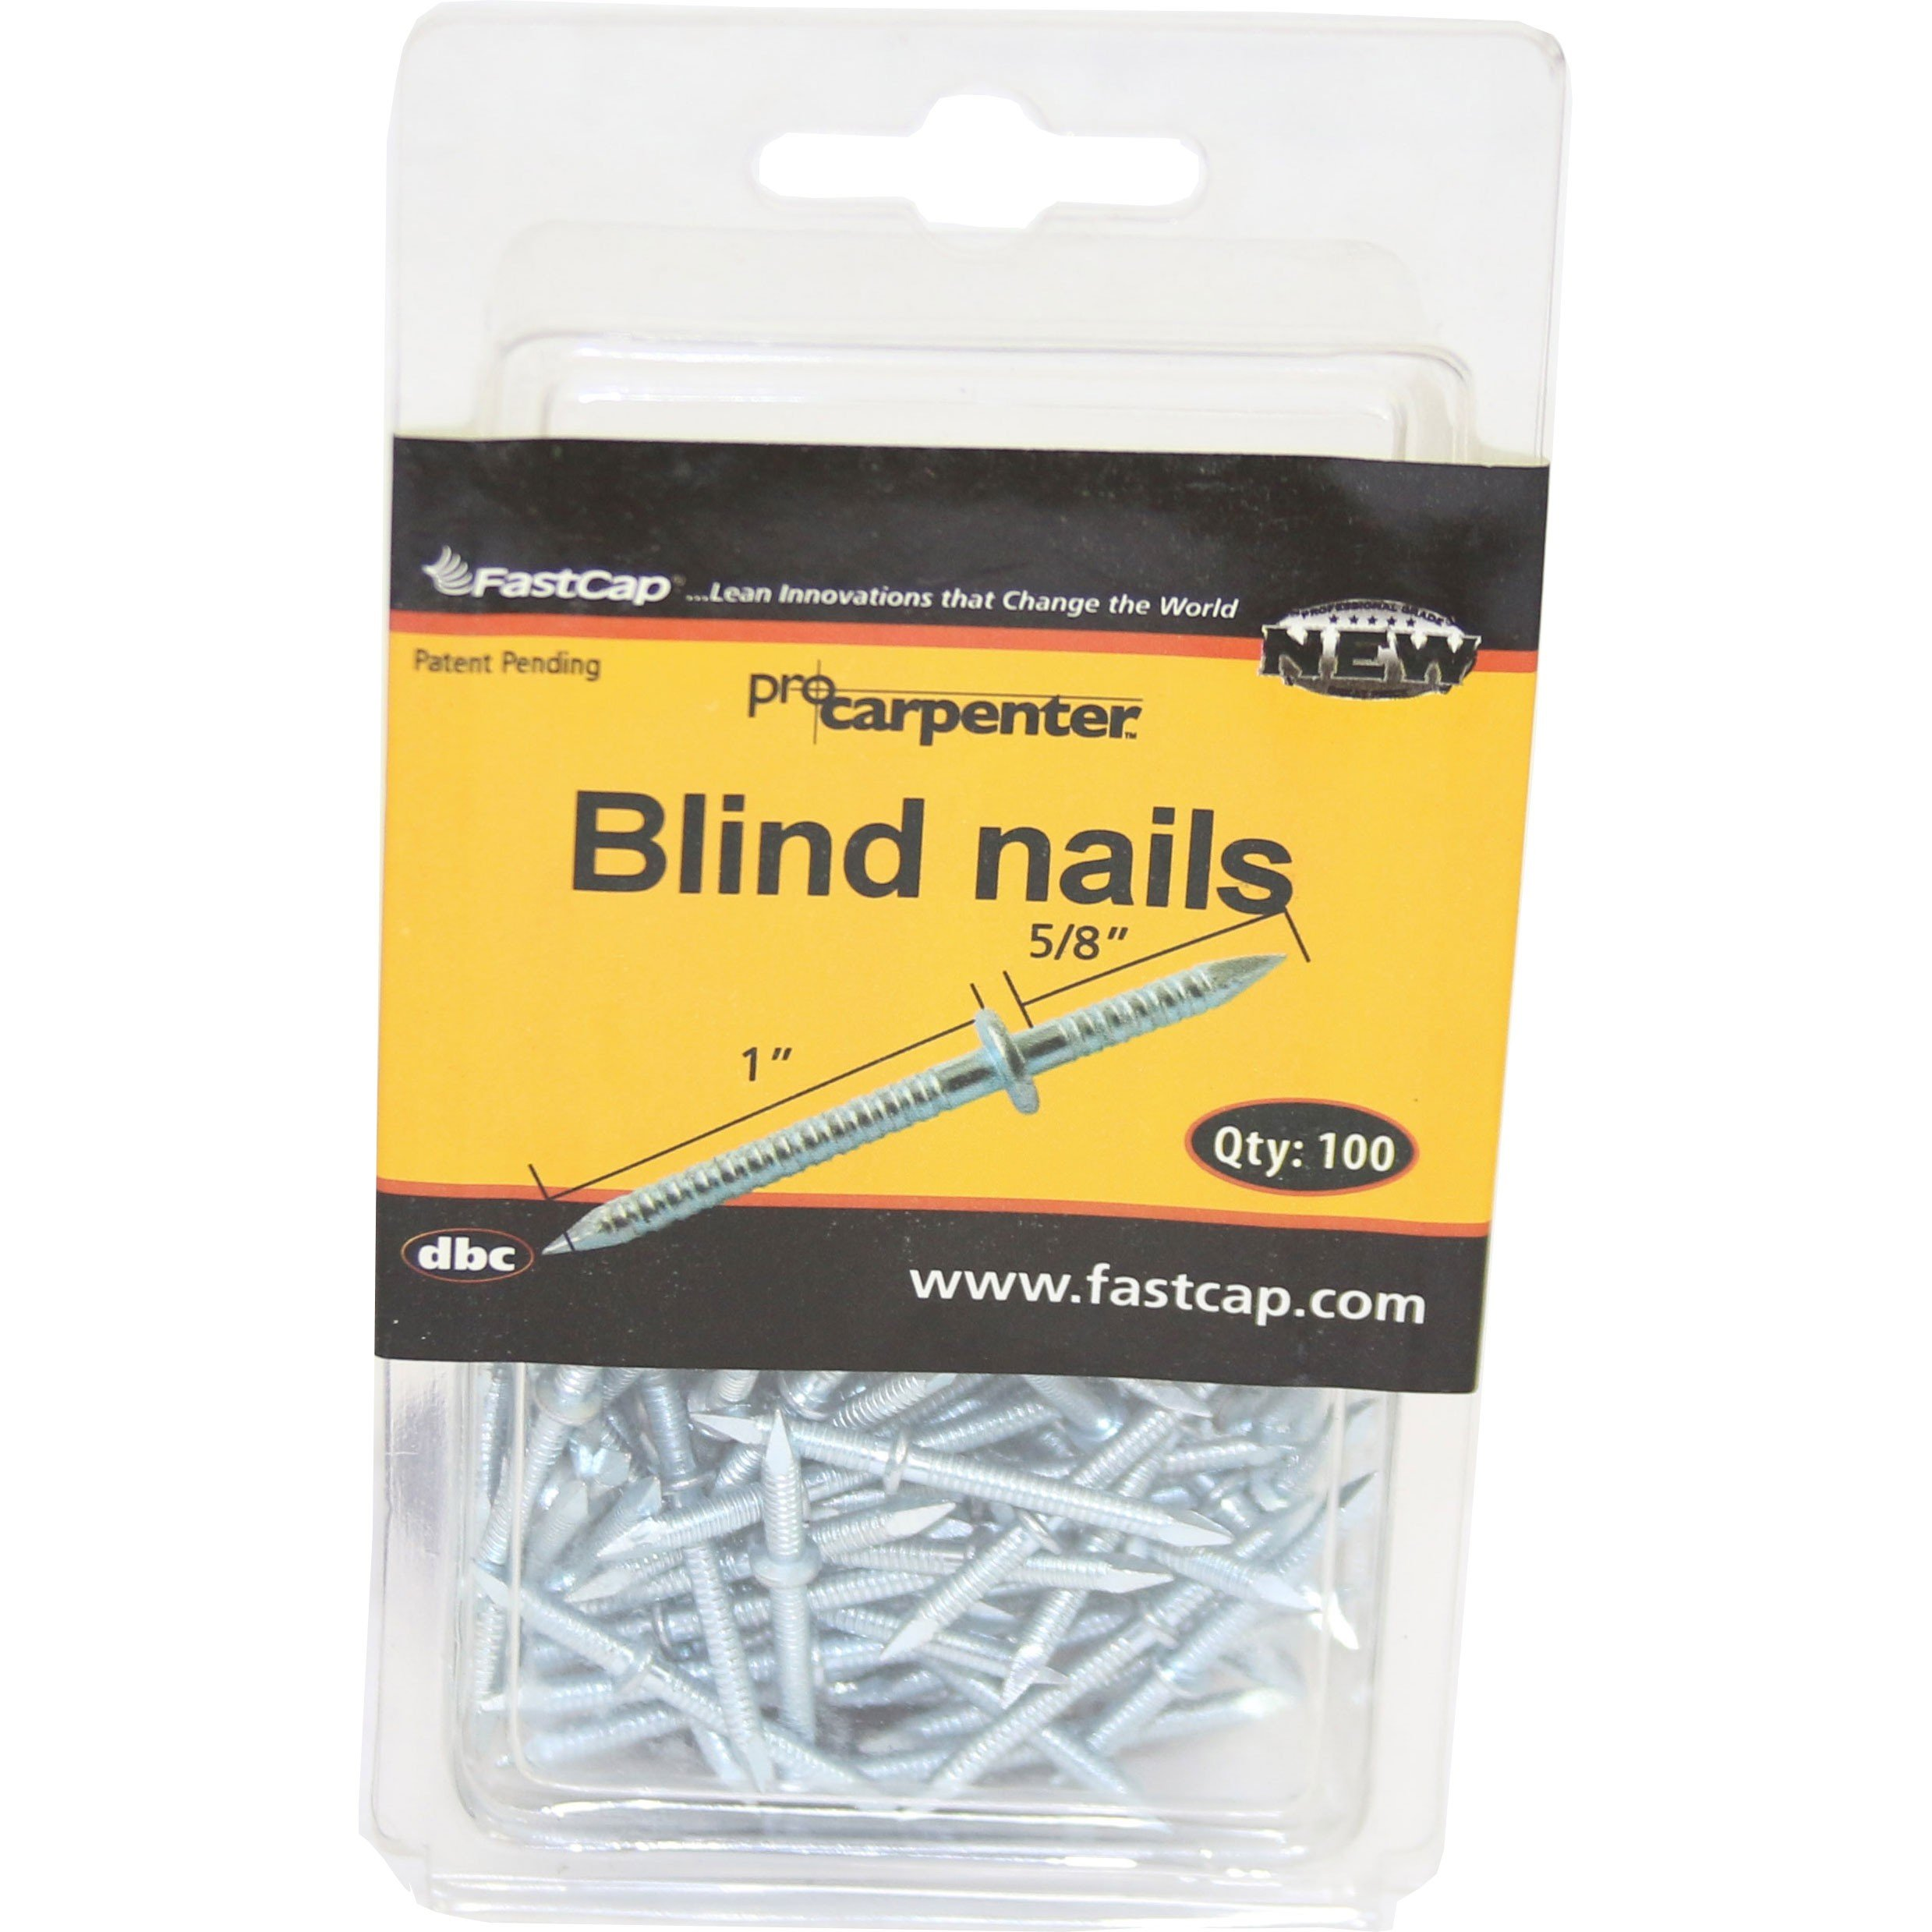 FastCap BLINDNAIL1XKIT Double-ended 1-inch x 5/8-inch Blind Nails, 100 Nails by Fastcap